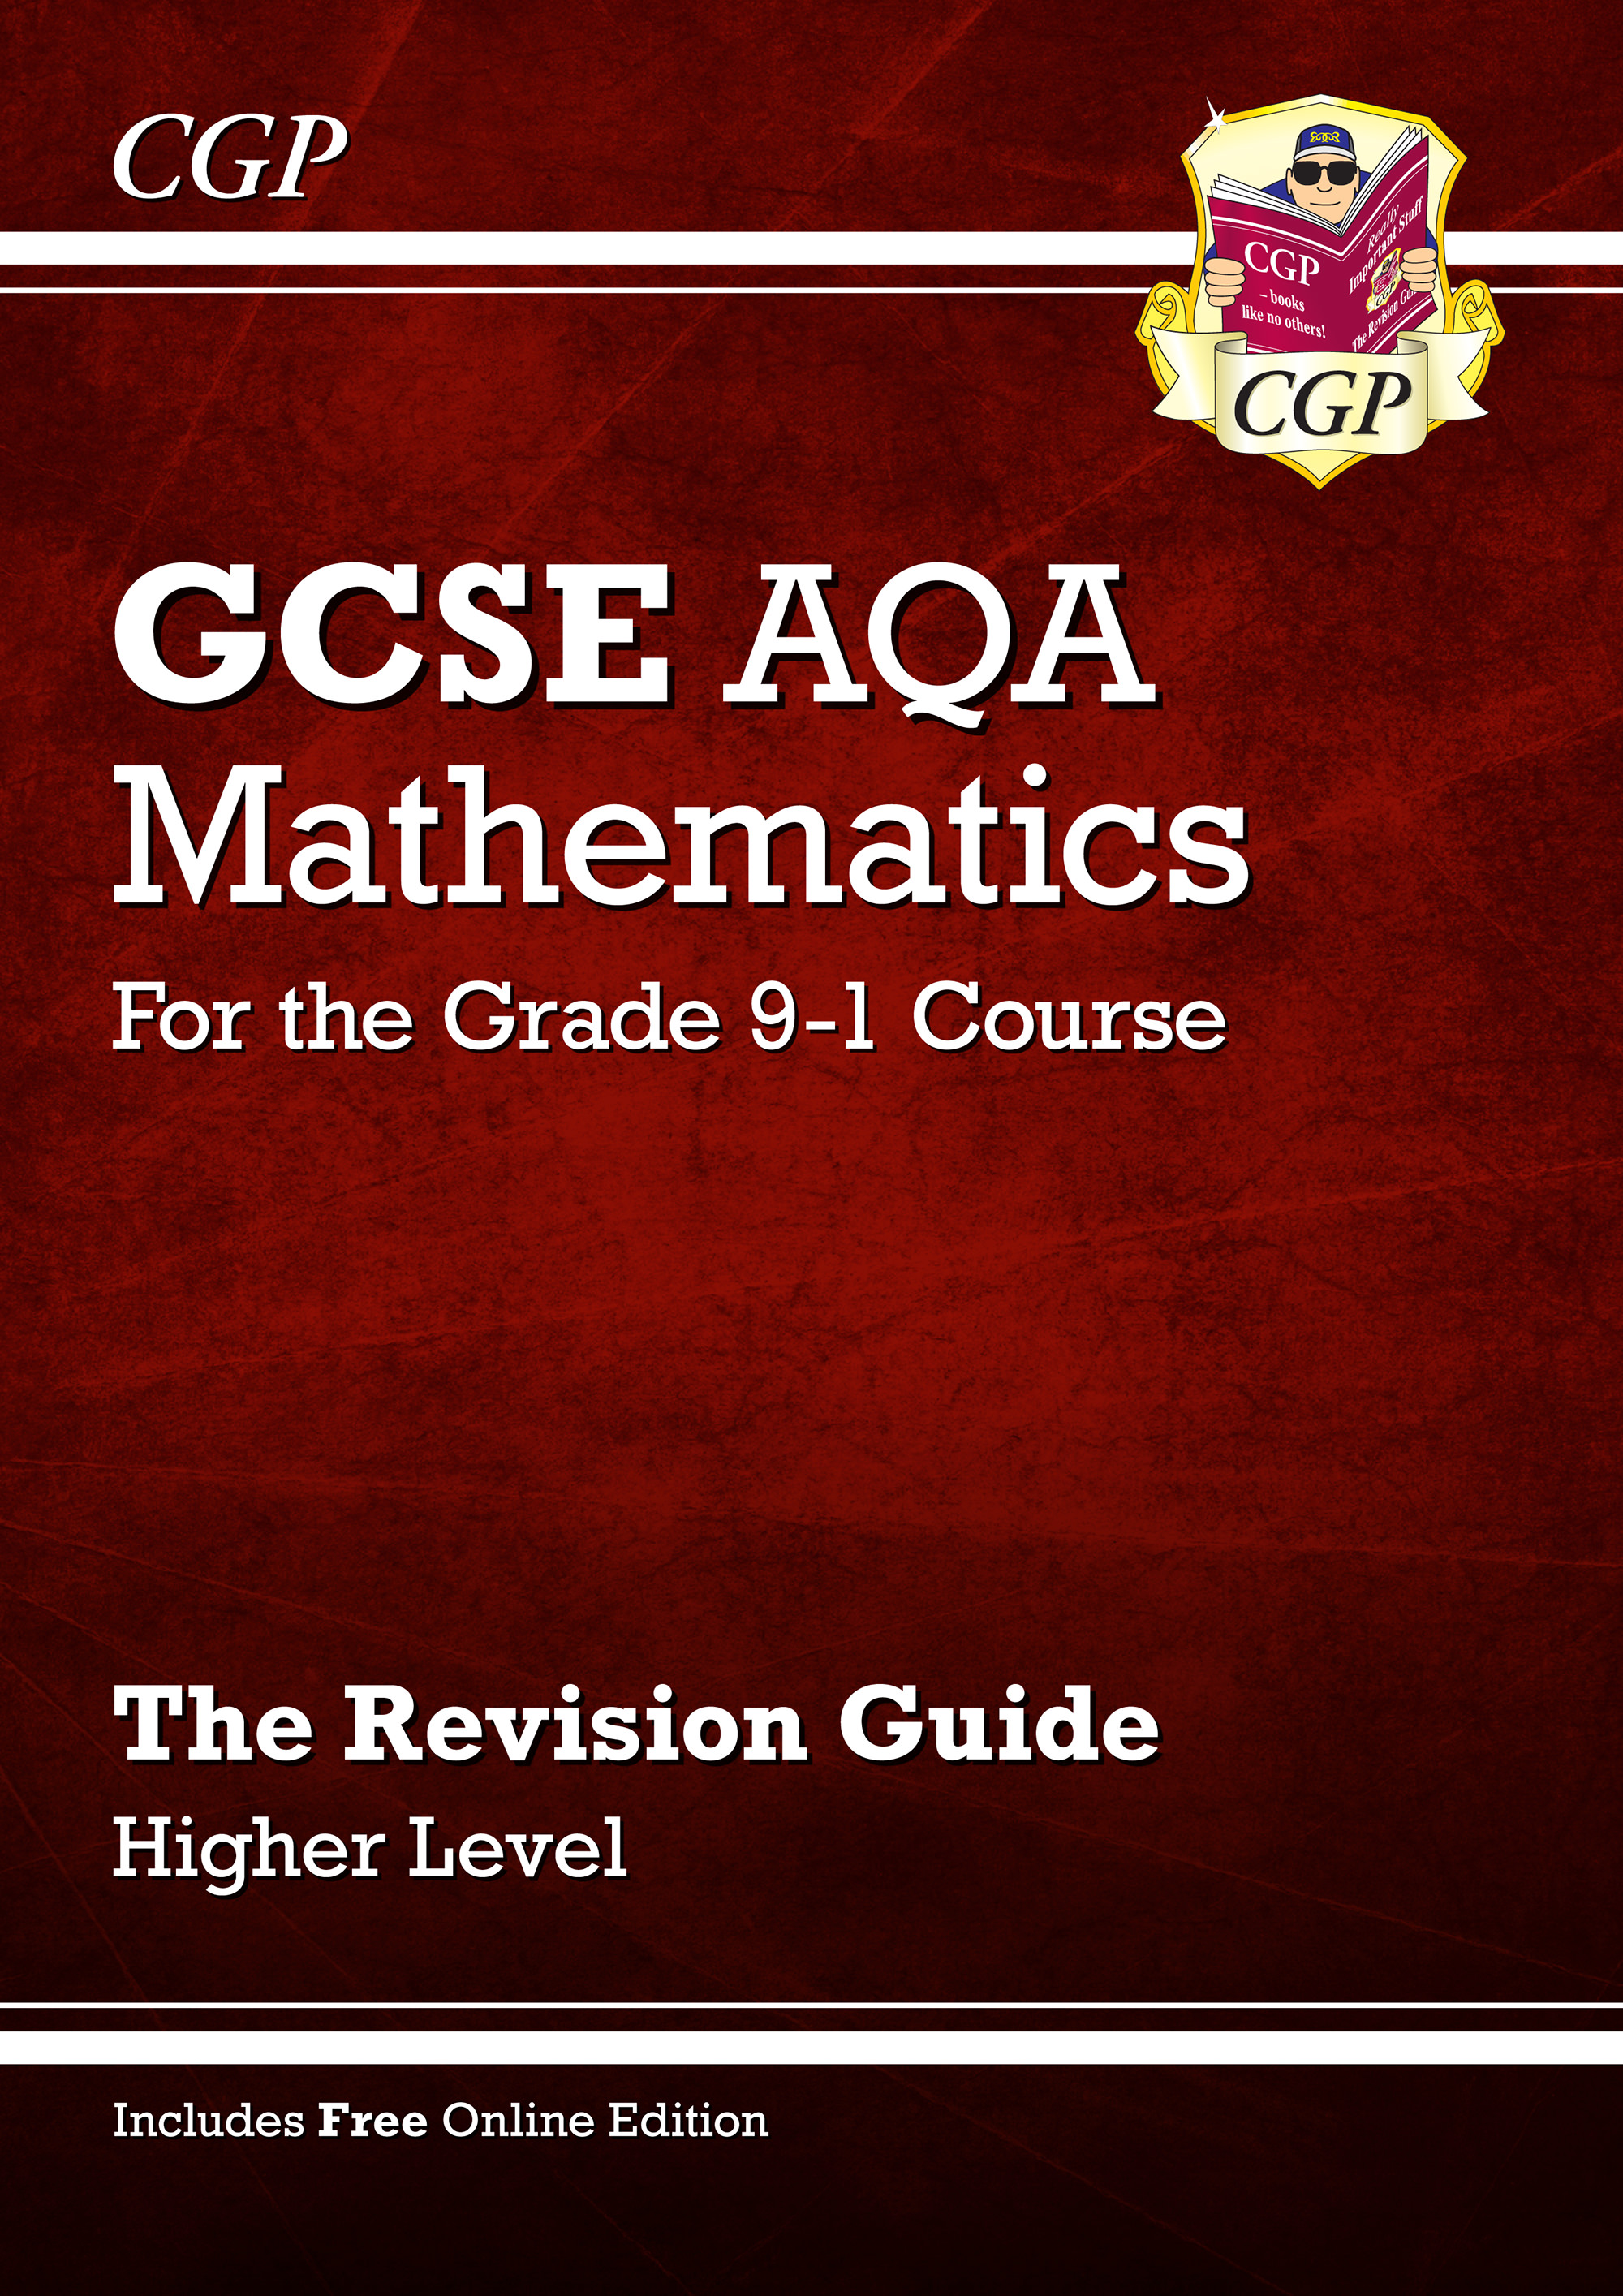 MQHR46 - GCSE Maths AQA Revision Guide: Higher - for the Grade 9-1 Course (with Online Edition)